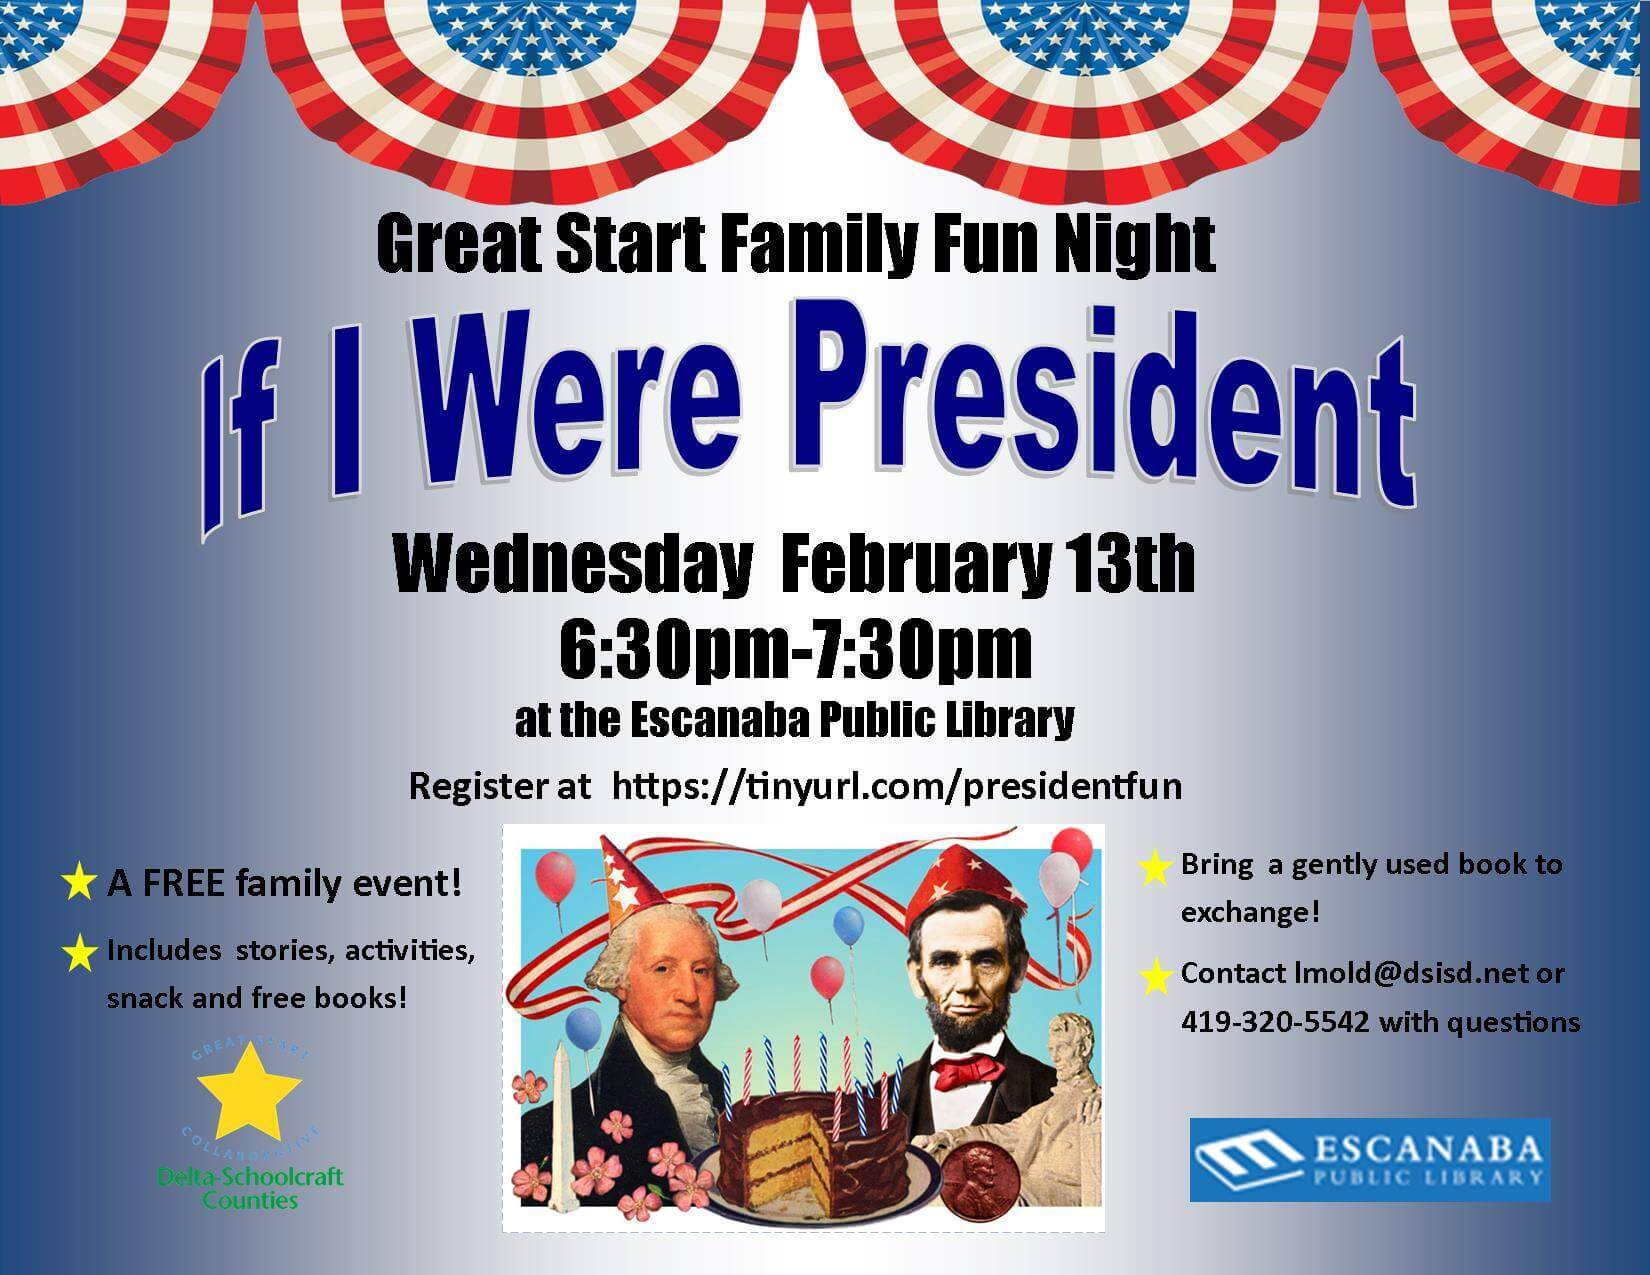 "Great Start family fun night. ""If I Were President."" Wednesday, February 13th. 6:30pm-7:30 pm. at the Escanaba public library. Register at https://tinyurl.com/presidentfun. A free family event! Includes stories, activities, snack and free books! Bring a gently used book to exchange! Contact lmold@dsisd.net or 419-320-5542 with questions."